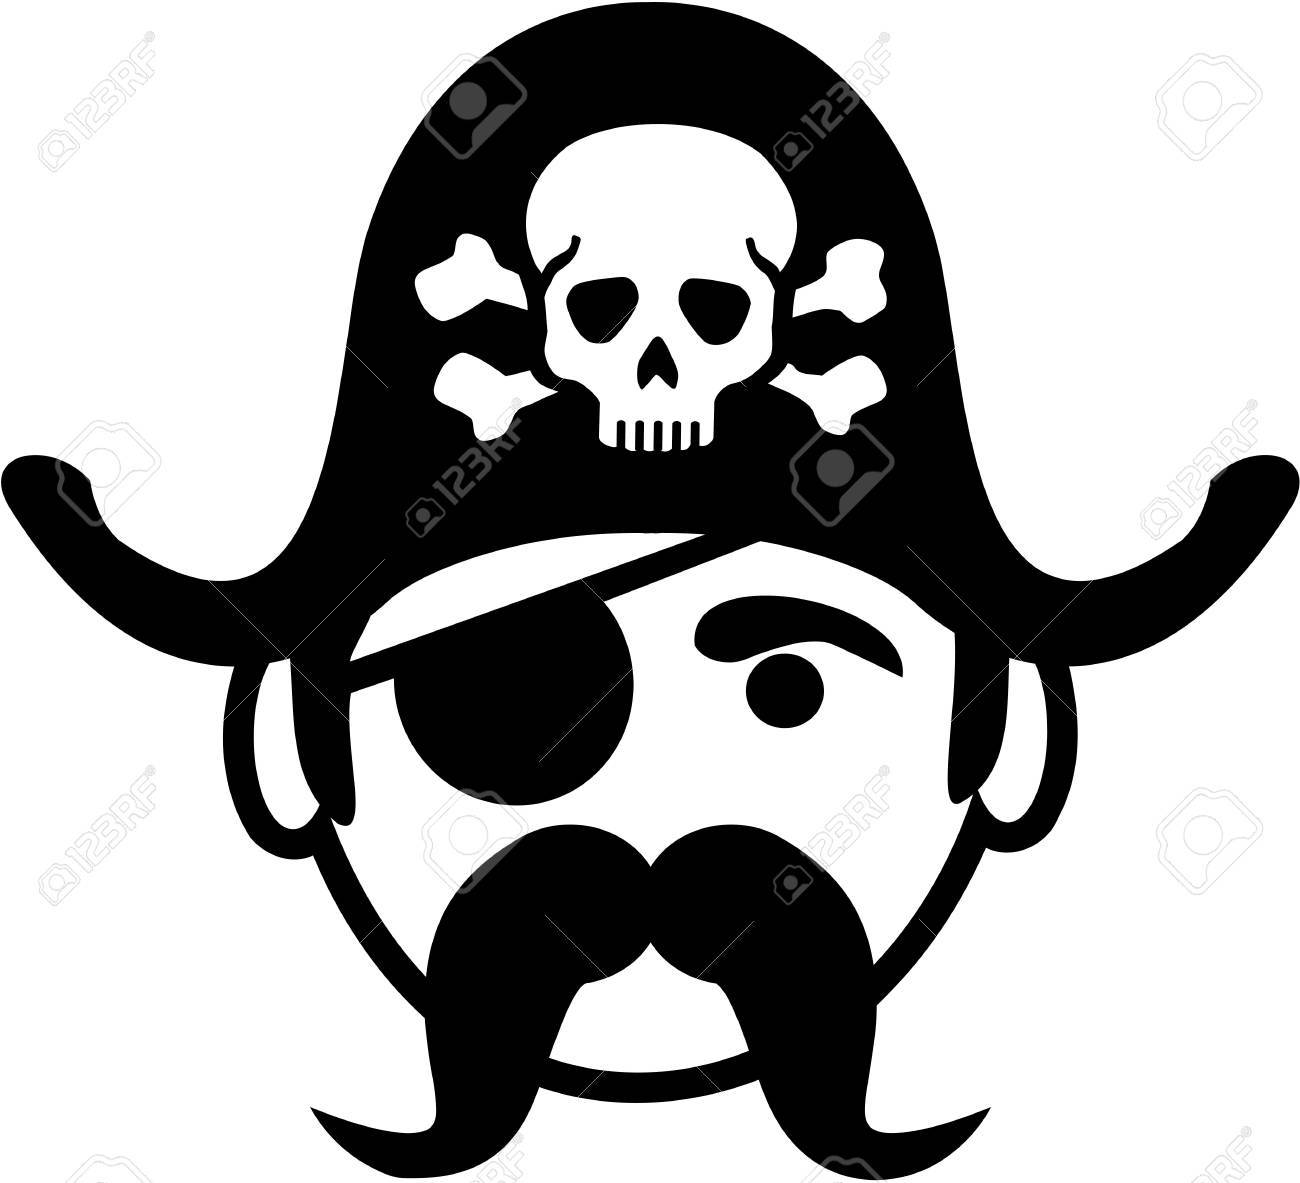 Pirate eye patch clipart | free images at clker. Com vector clip.